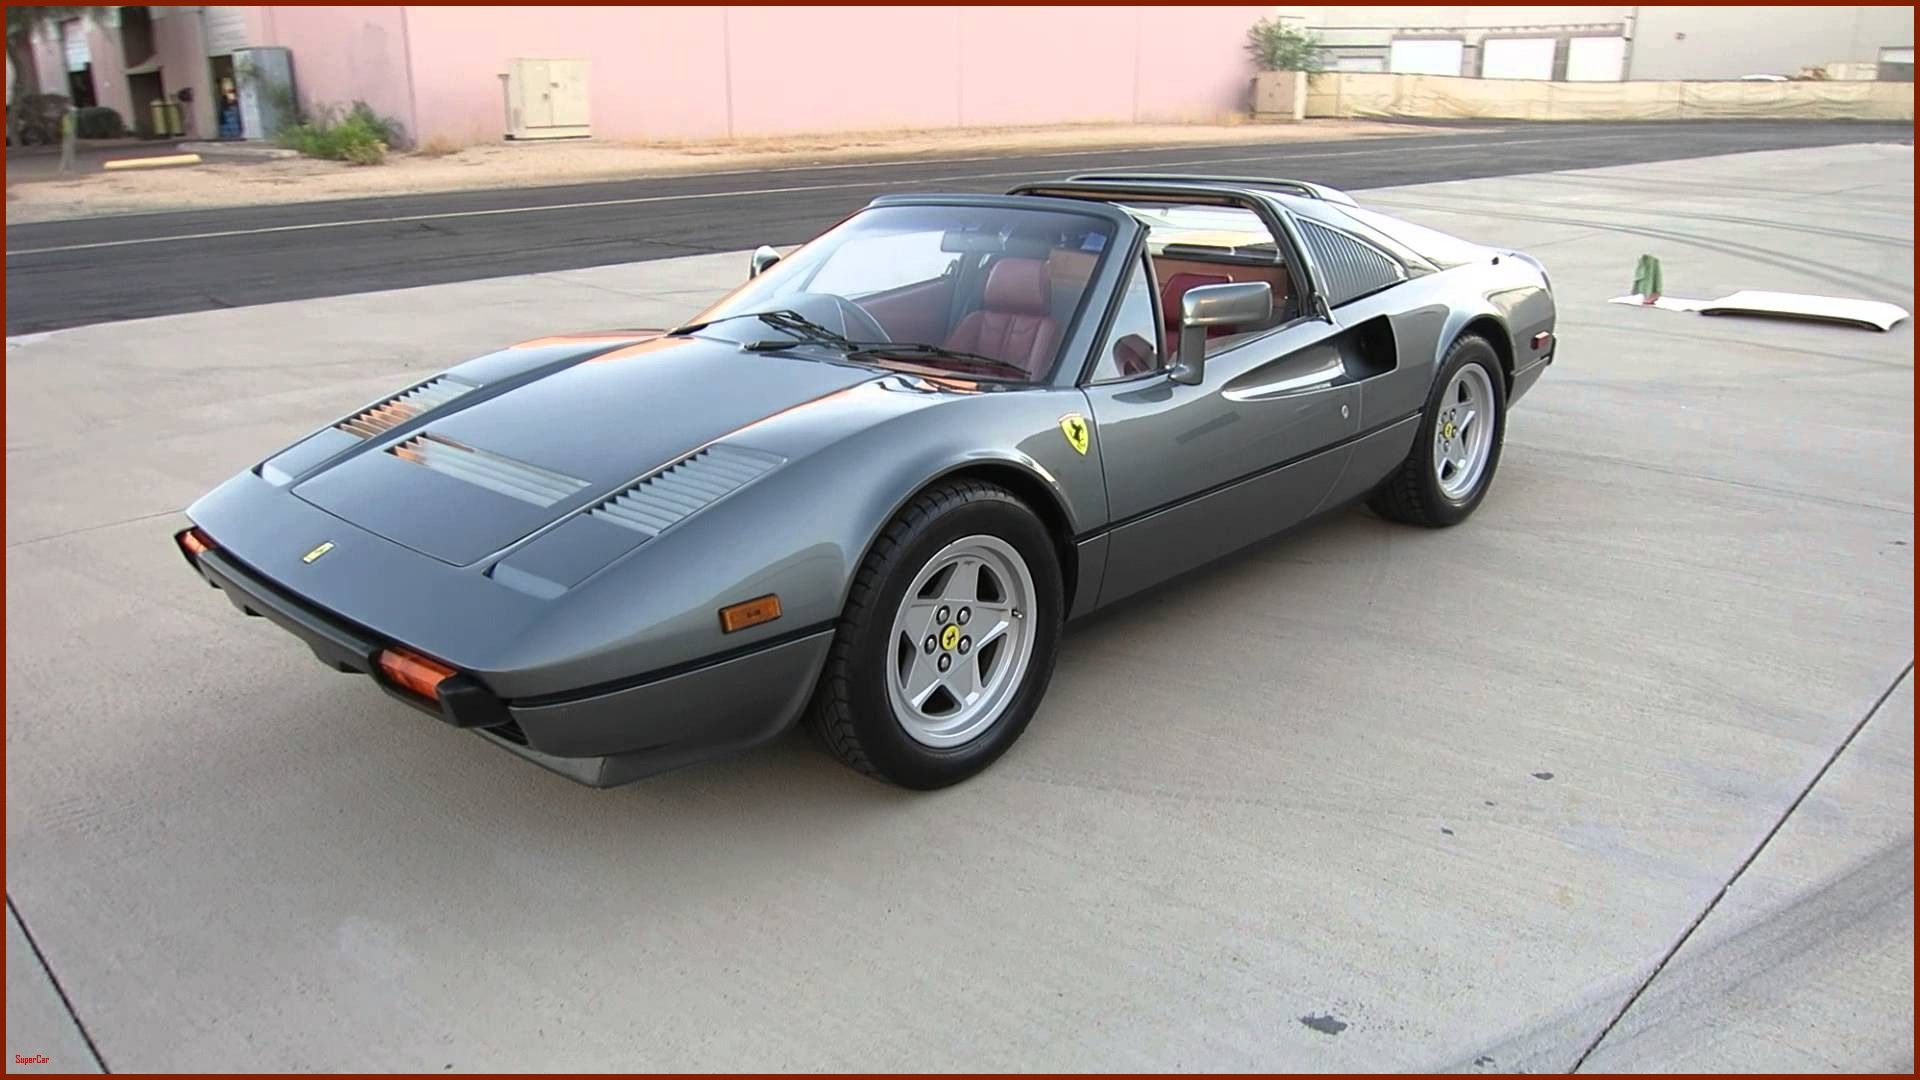 Best Of Ferrari 308 Gtb Quattrovalvole 1985 for Sale- Pleasant for you to our blog, in this particular time I'm going to show you concerning Ferrari 308 Gtb Quattrovalvole 1985 For Sale. And now, this is the primary impression:   1985 ferrari 308 gts quattrovalvole for sale in scottsdale az from Ferrari 308 Gtb Quattrovalvole 1985 For Sale, source:youtube.